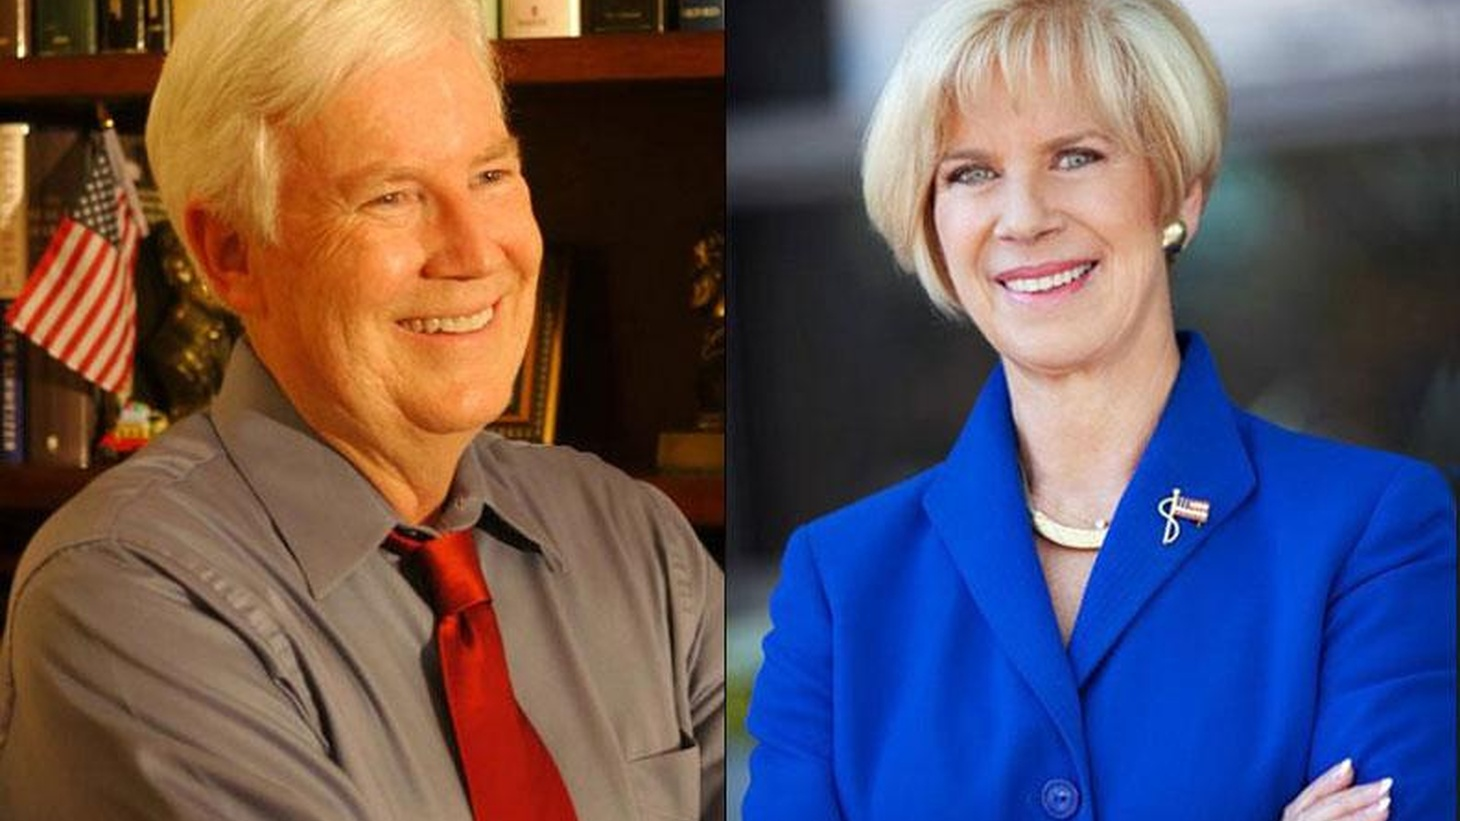 LA City Council member Janice Hahn is getting a tough race from direct-mail marketer Craig Huey in a nasty Congressional race that also could be a close one...